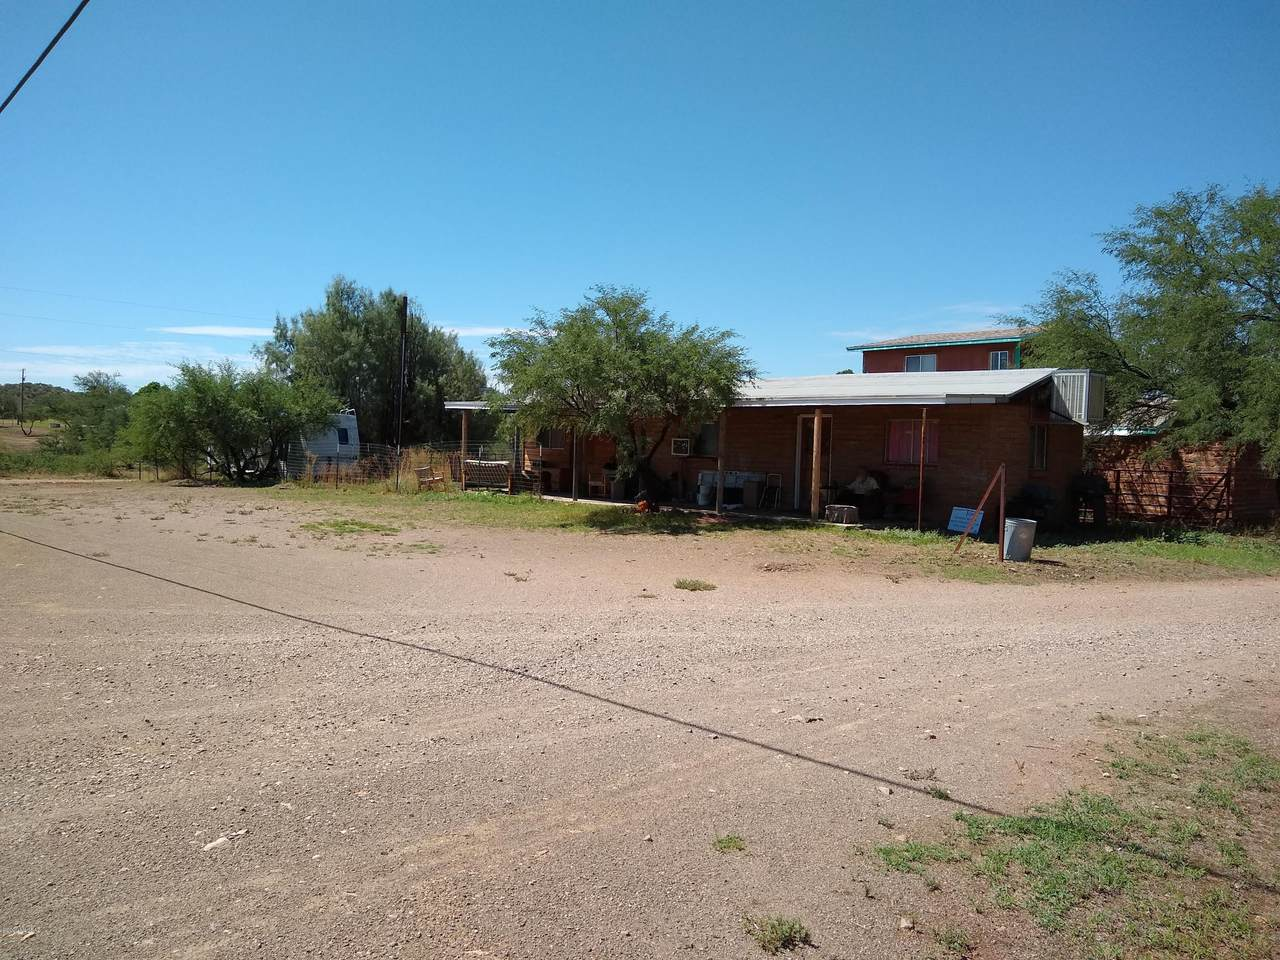 https://bt-photos.global.ssl.fastly.net/tucson/1280_boomver_1_22019408-2.jpg